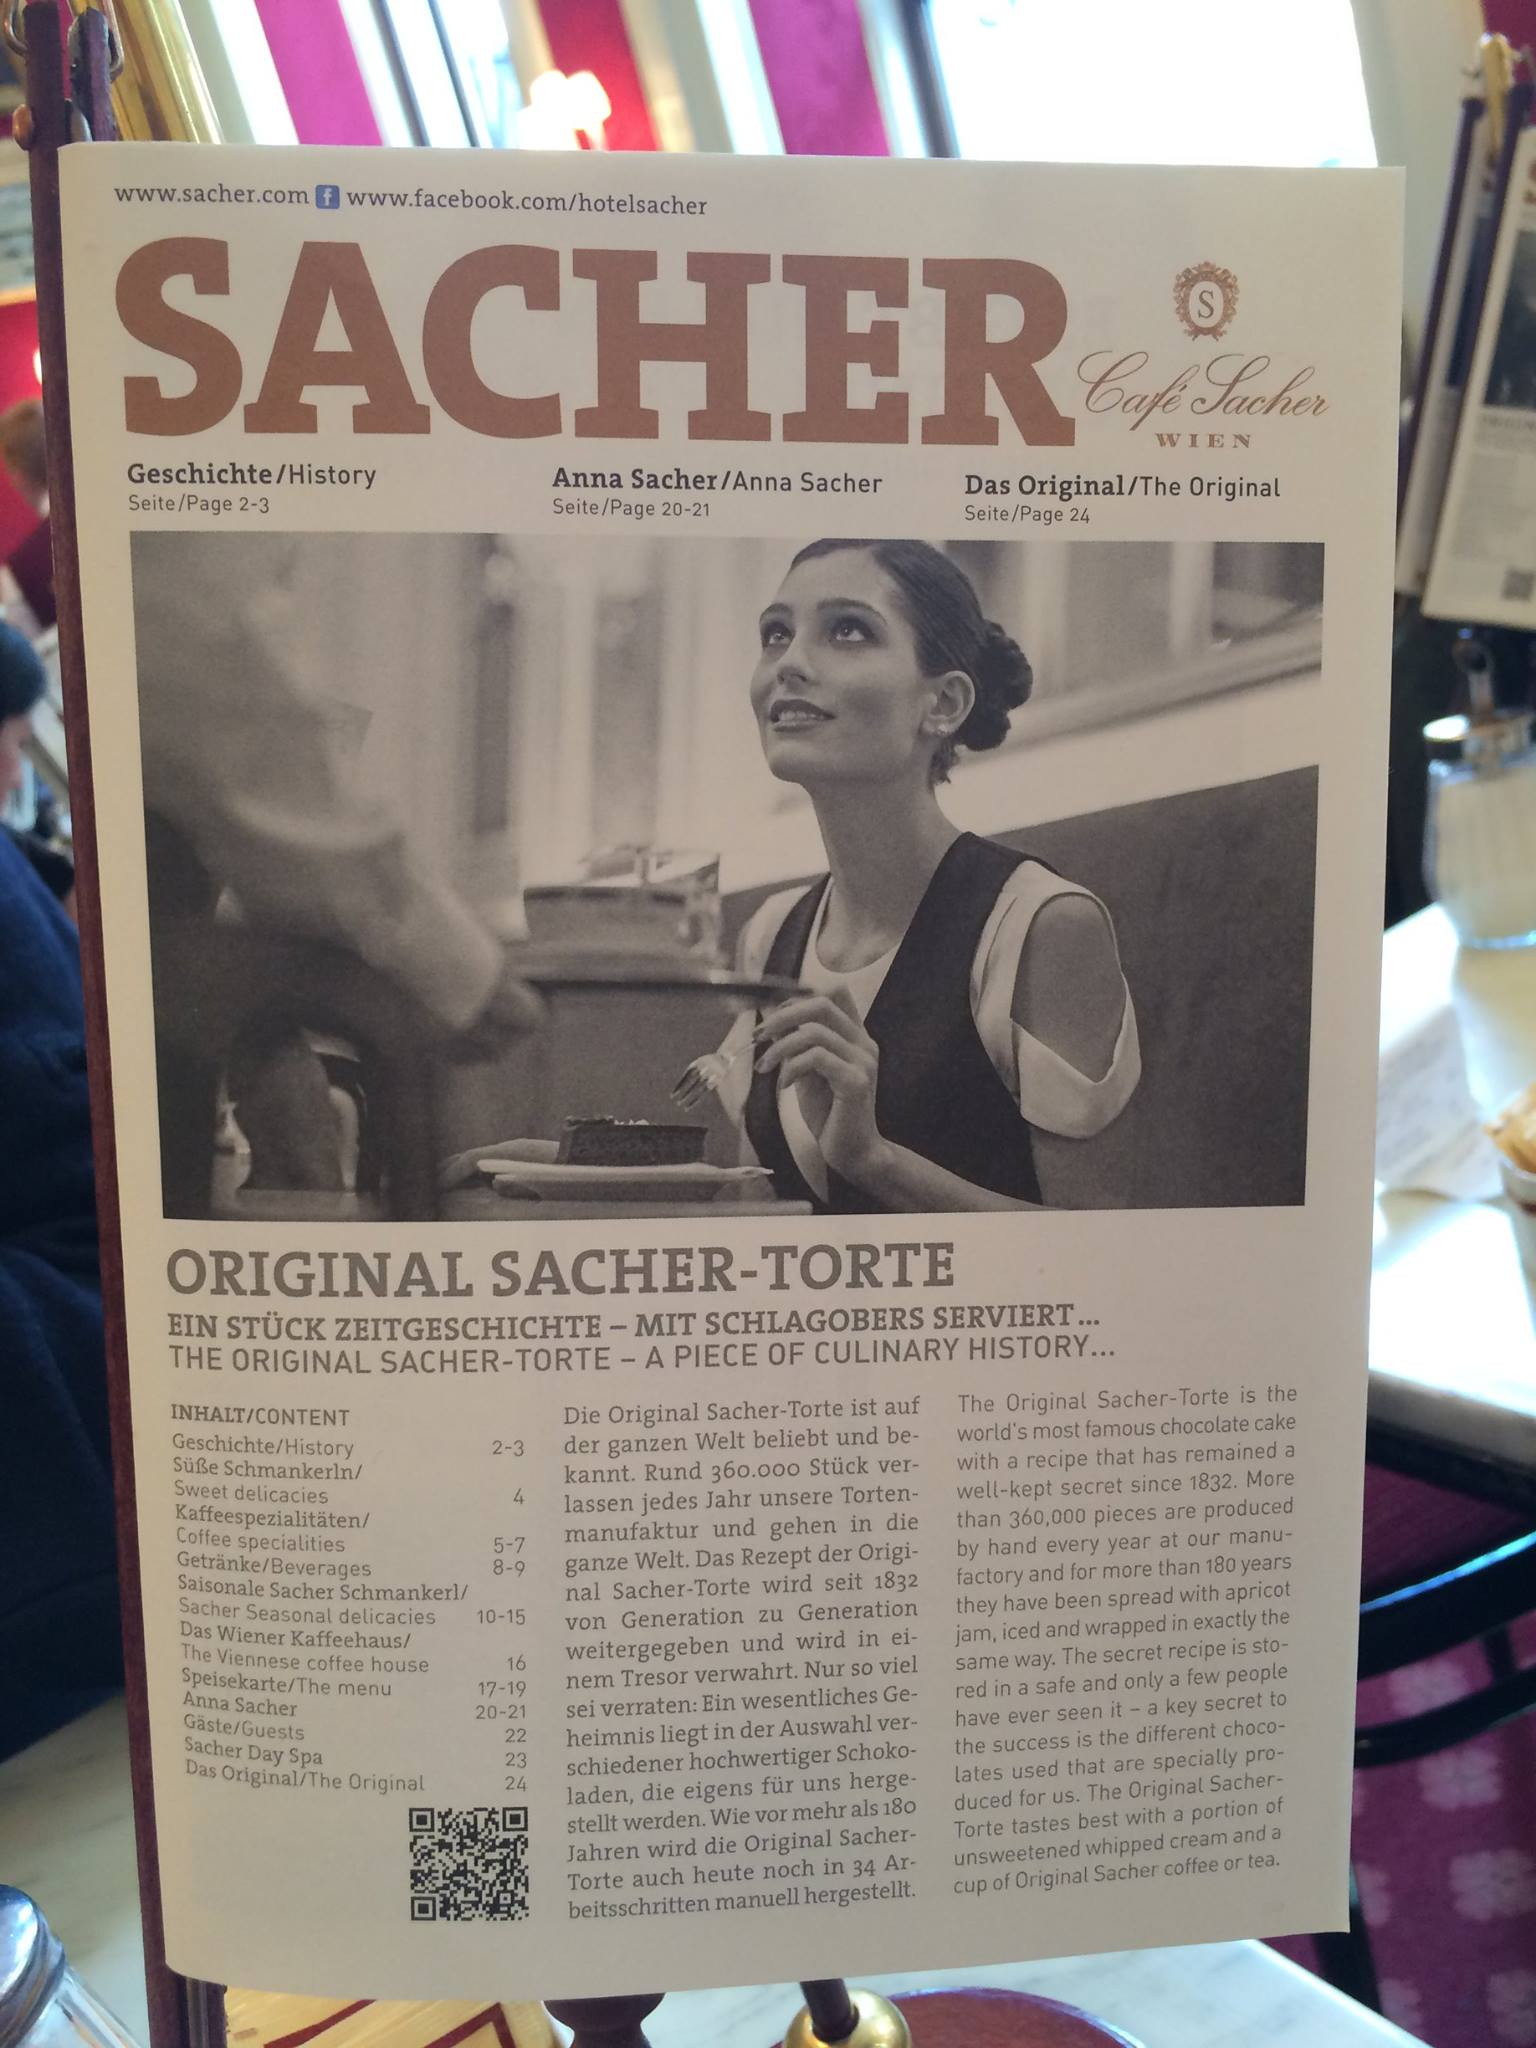 Sacher menu in the cafe